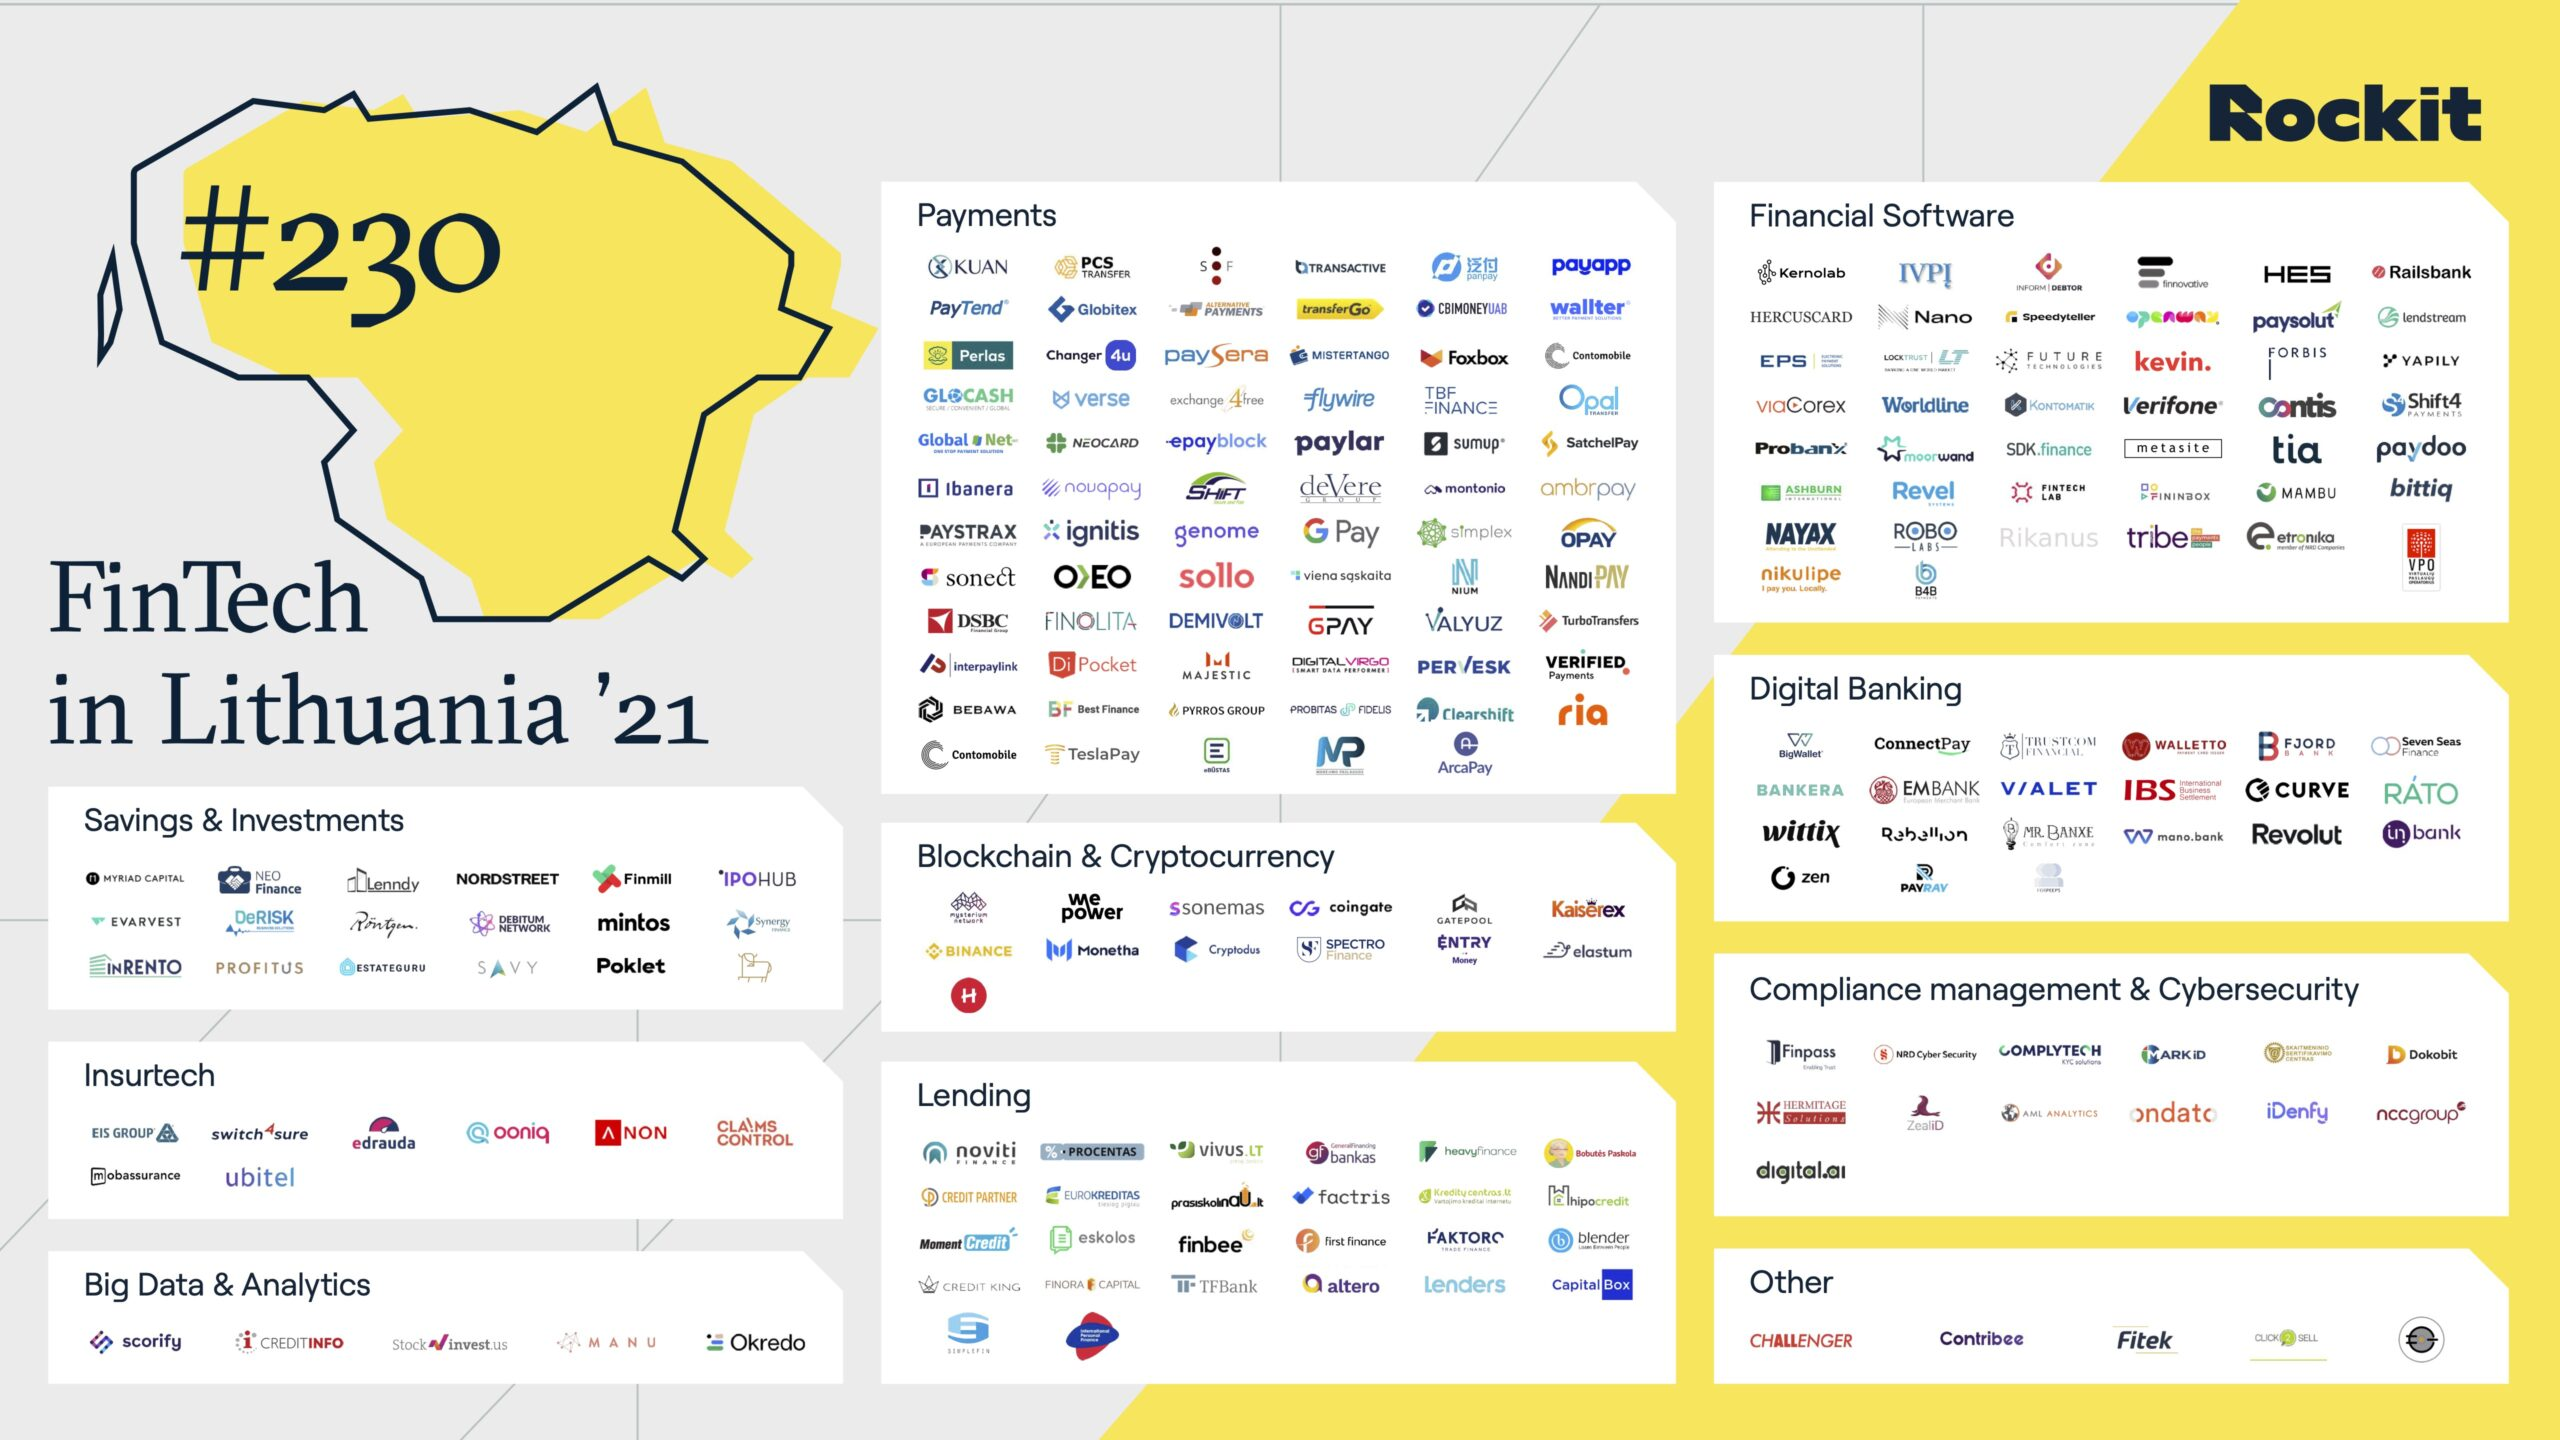 Lithuanian Fintech Map 2021 by Rockit, The Fintech Landscape in Lithuania 2020-2021, Invest Lithuania, Feb 2021